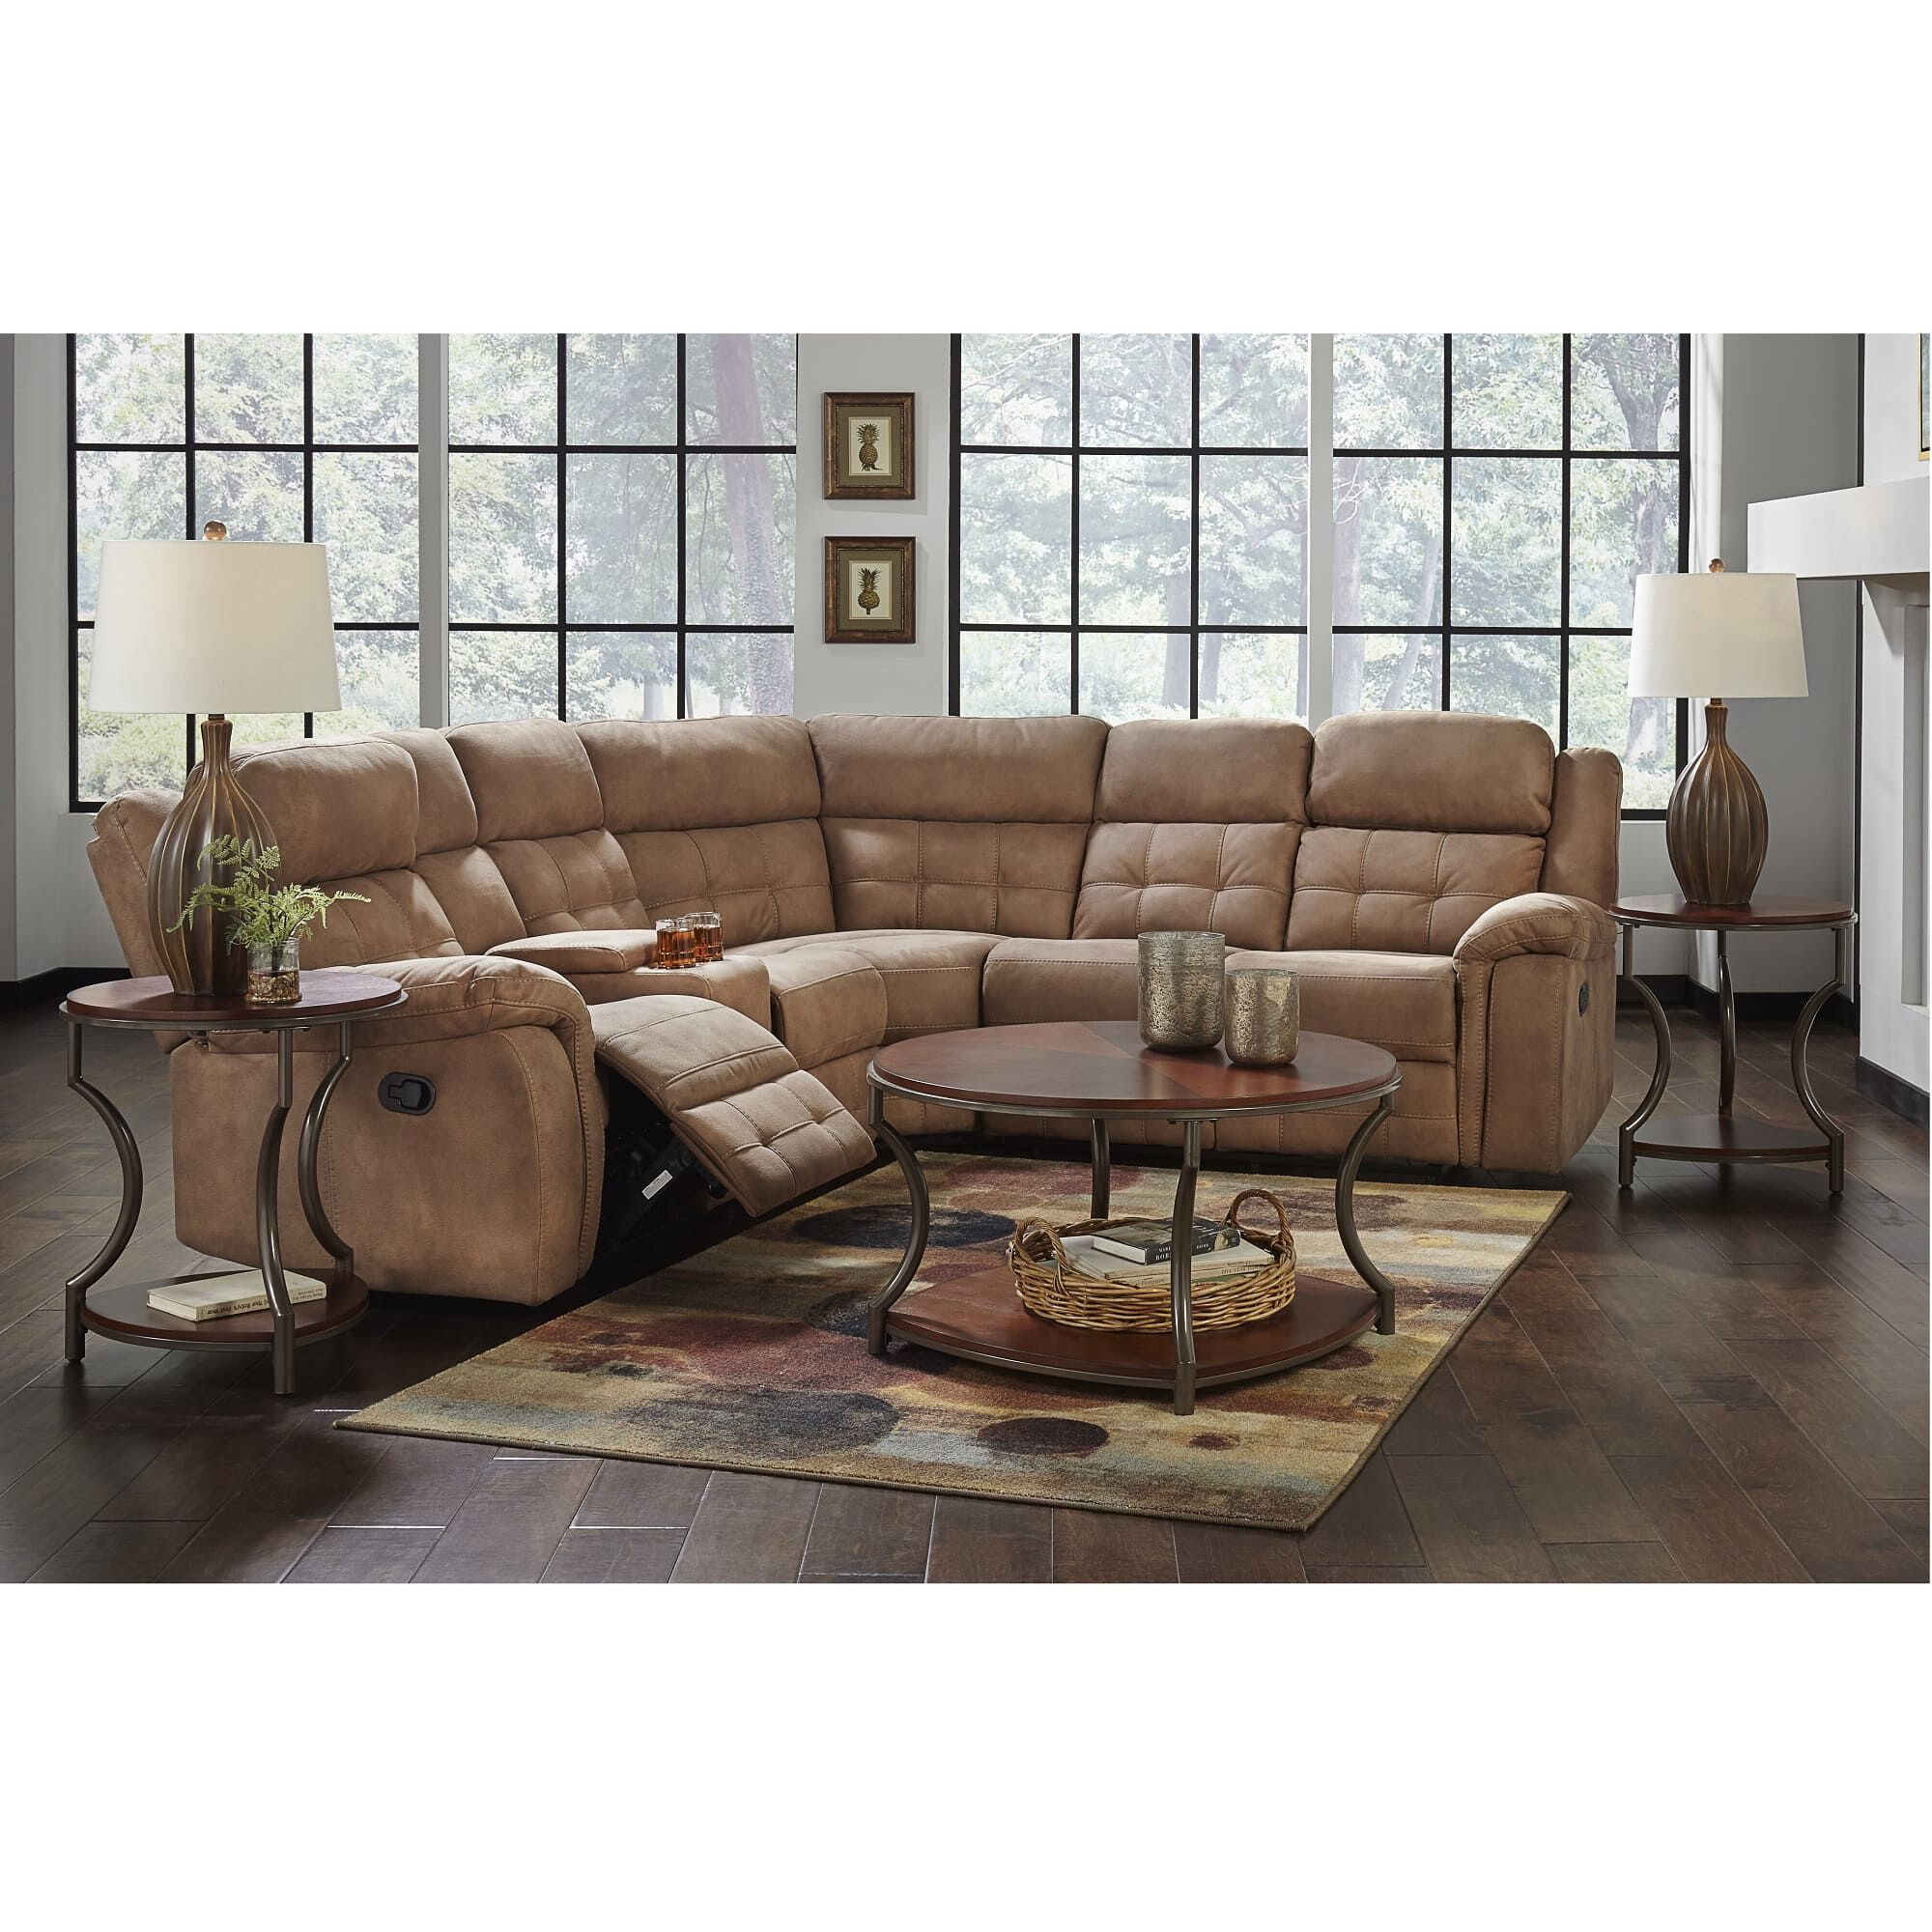 Living Room Sofas Sets 8 Piece Cobalt Reclining Sectional Living Room Collection